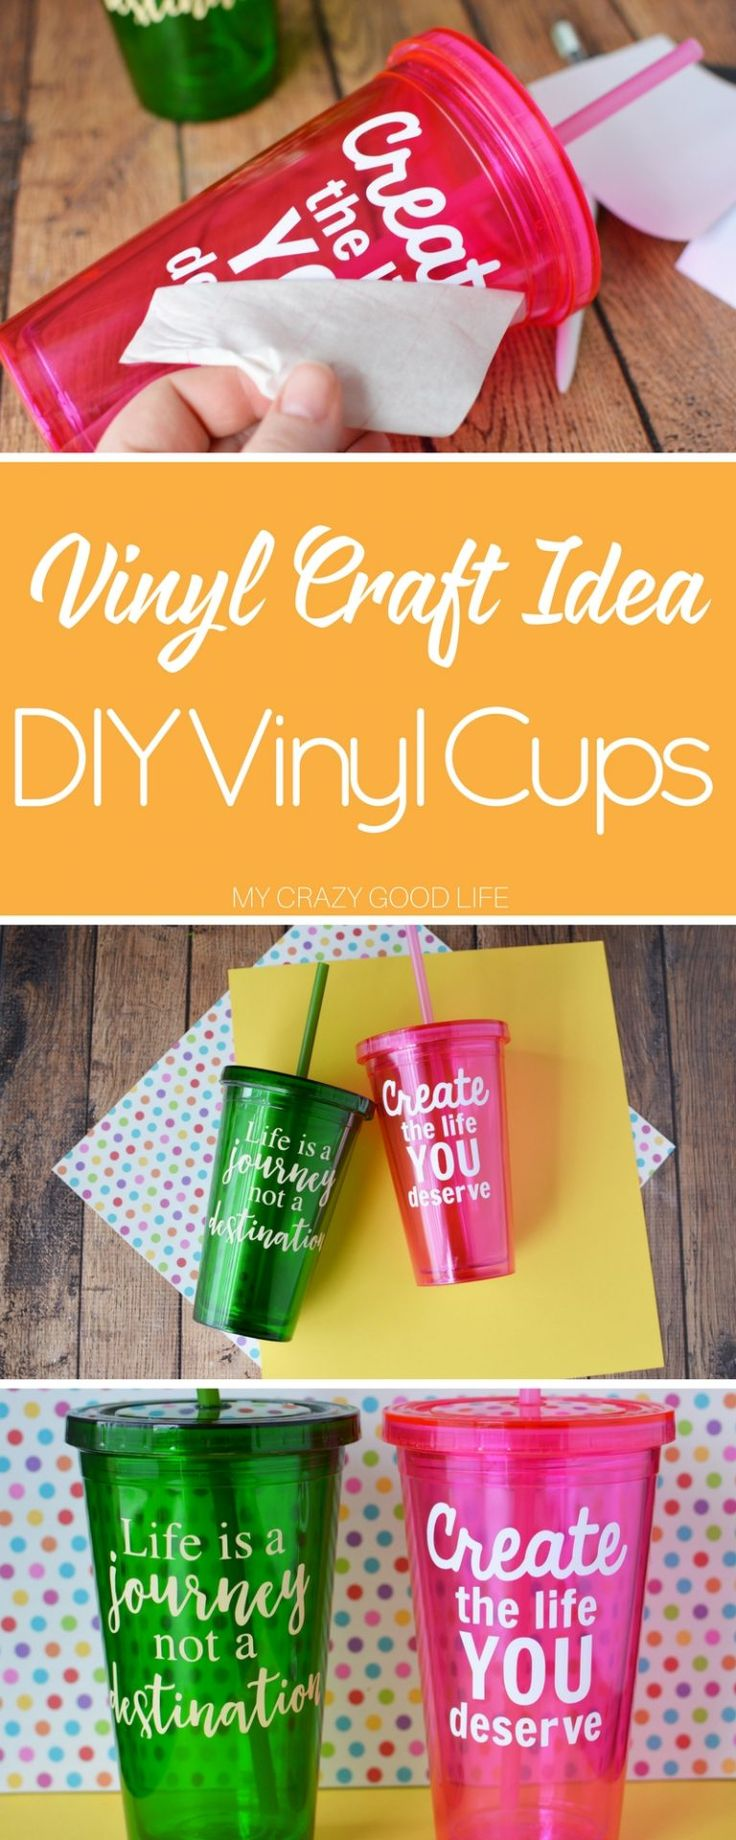 Best Die Cutting  Electronic Cuttng Images On Pinterest - Best vinyl for cups